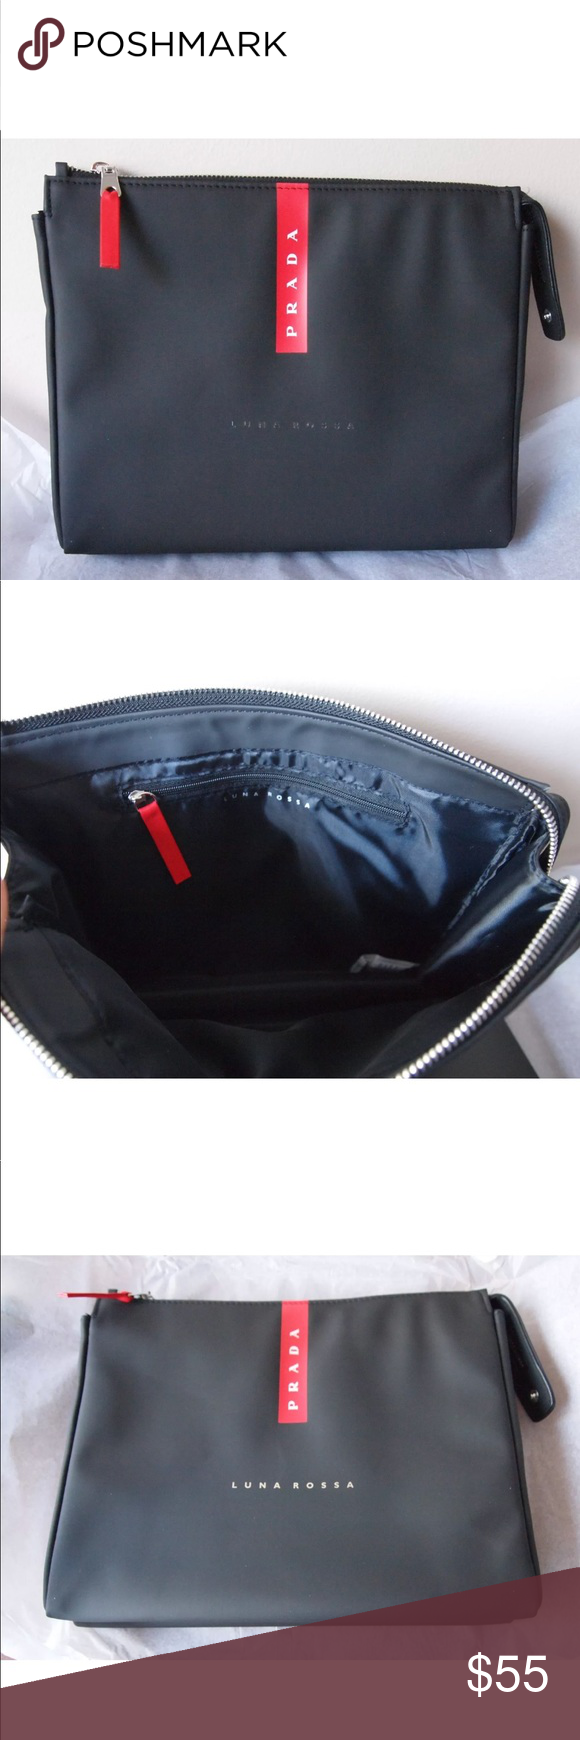 8b8de523a647f0 PRADA Luna Rossa Carbon Pouch Travel Cosmetic Bag PRADA Luna Rossa Carbon  Pouch Travel Cosmetic Bag black red large men friday Bags Cosmetic Bags &  Cases